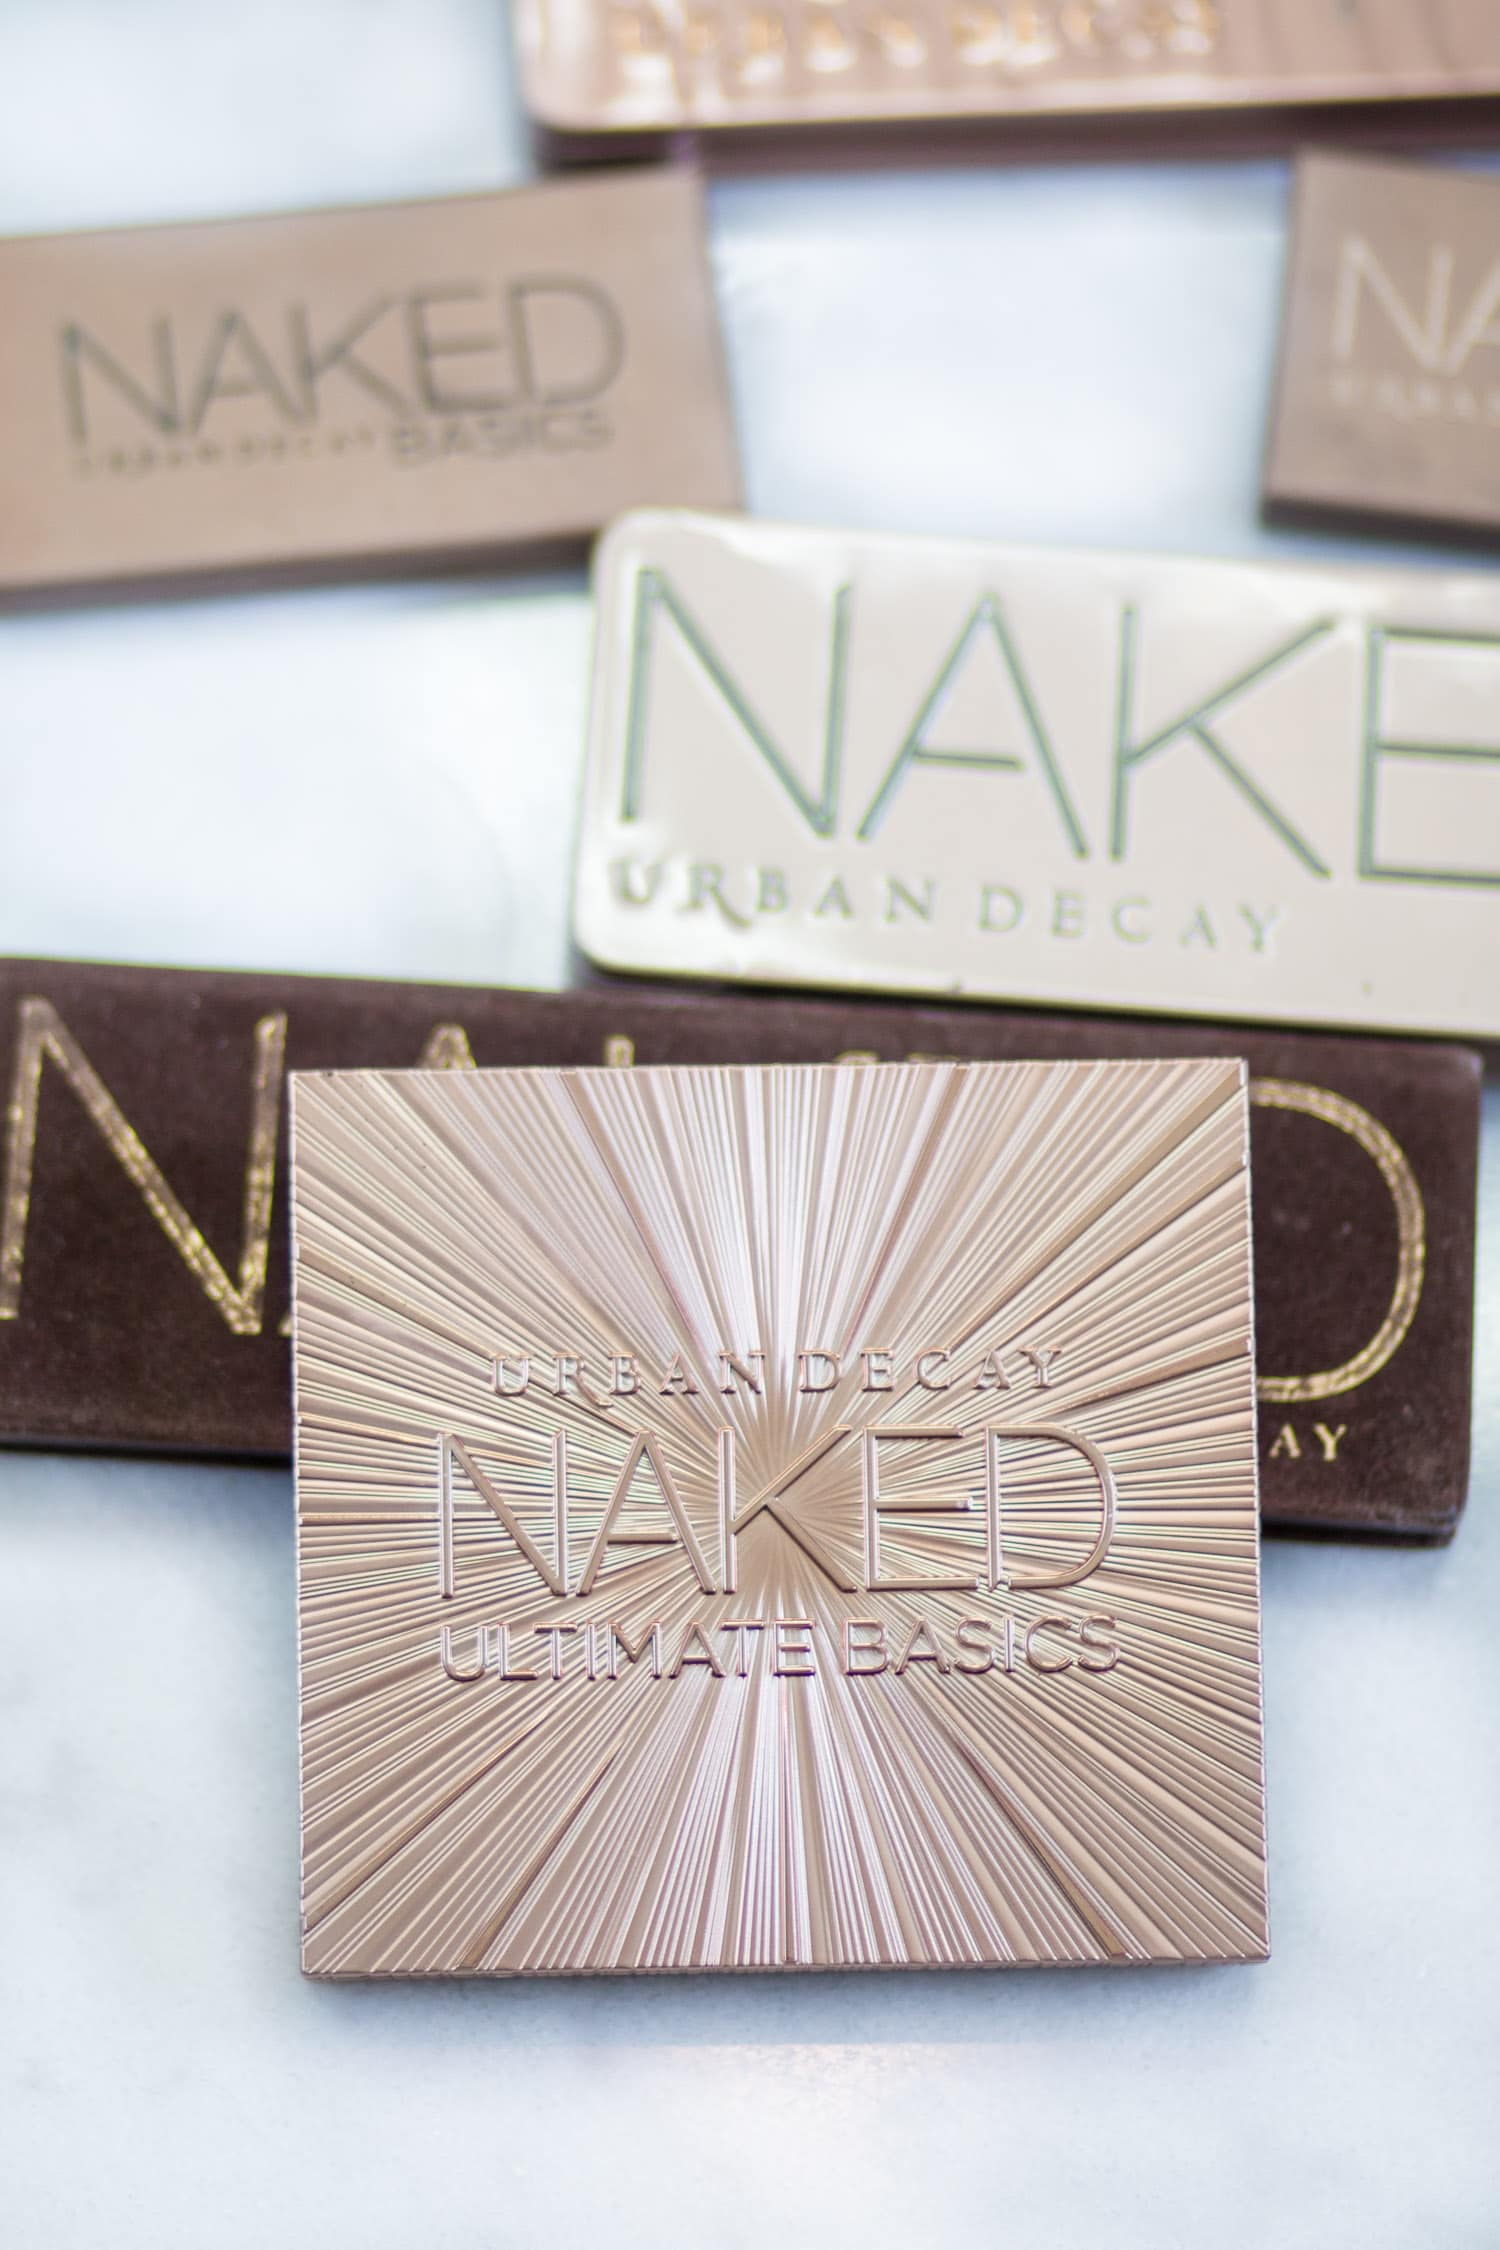 urban-decay-naked-ultimate-basics-palette-review-swatches-8945